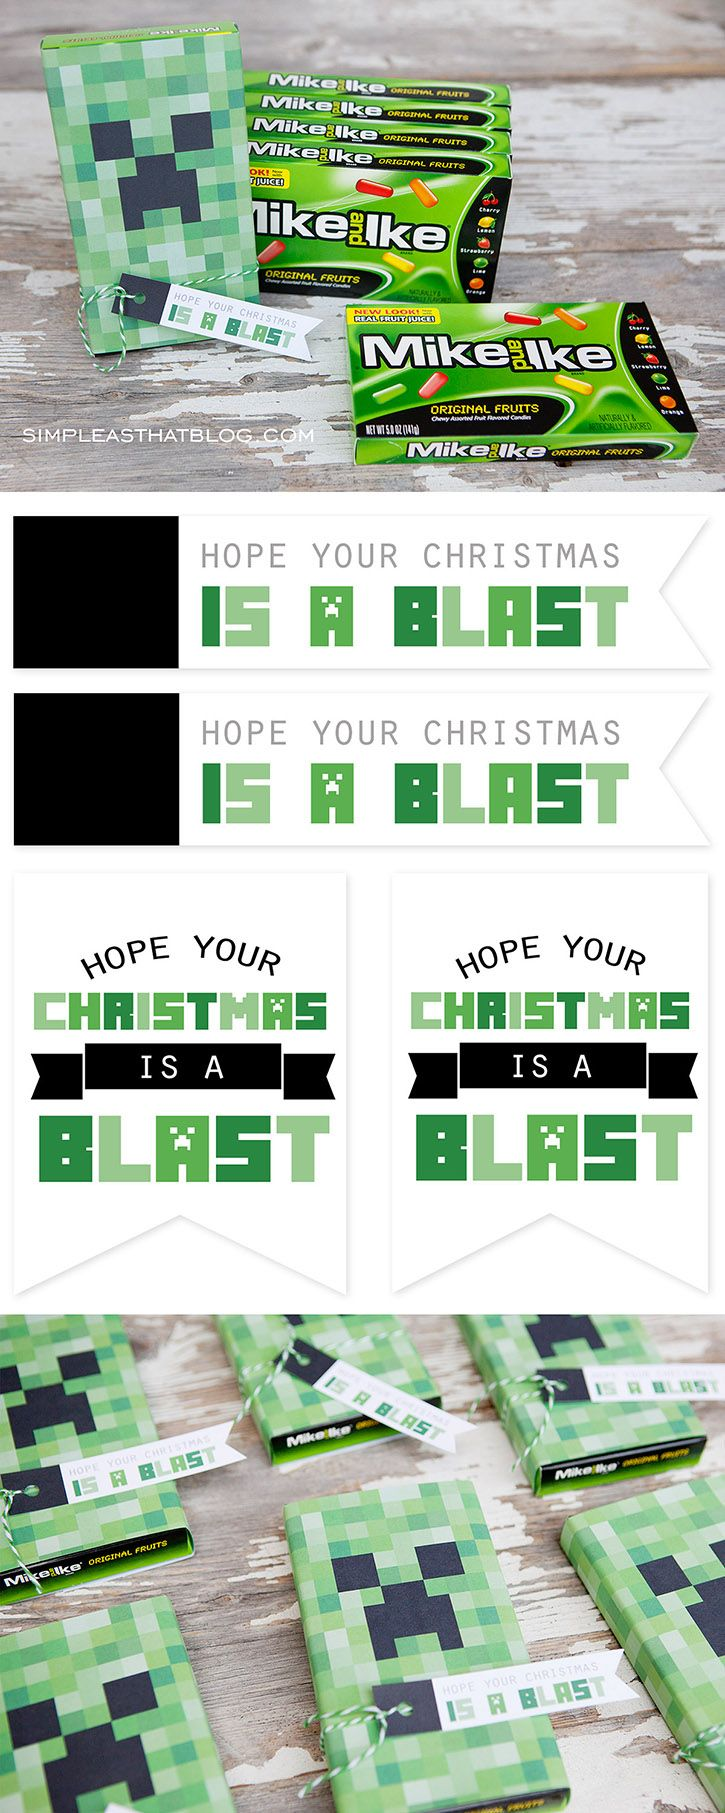 Printable Minecraft Gift Tags And Christmas Gift Idea Minecraft